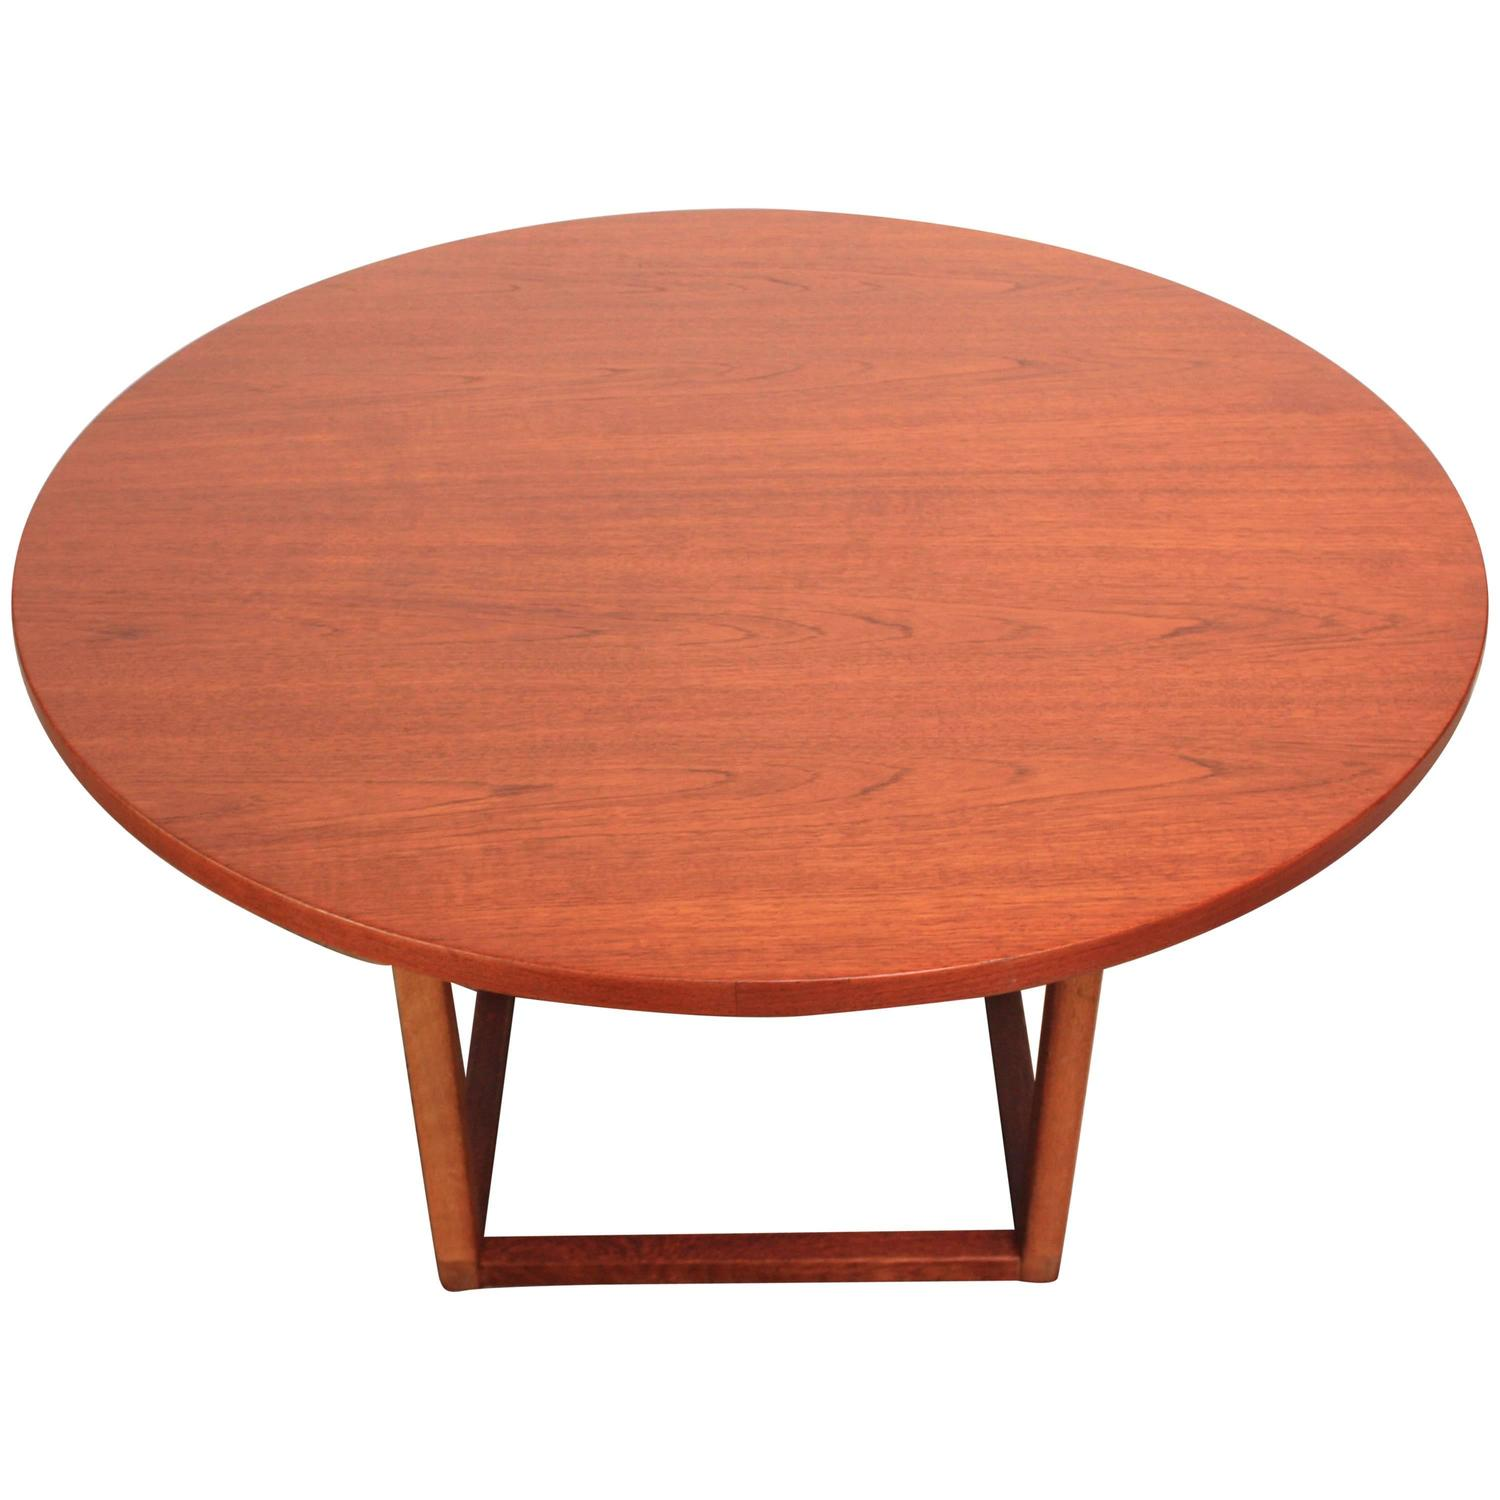 Danish Teak Round Coffee Dining Table At 1stdibs